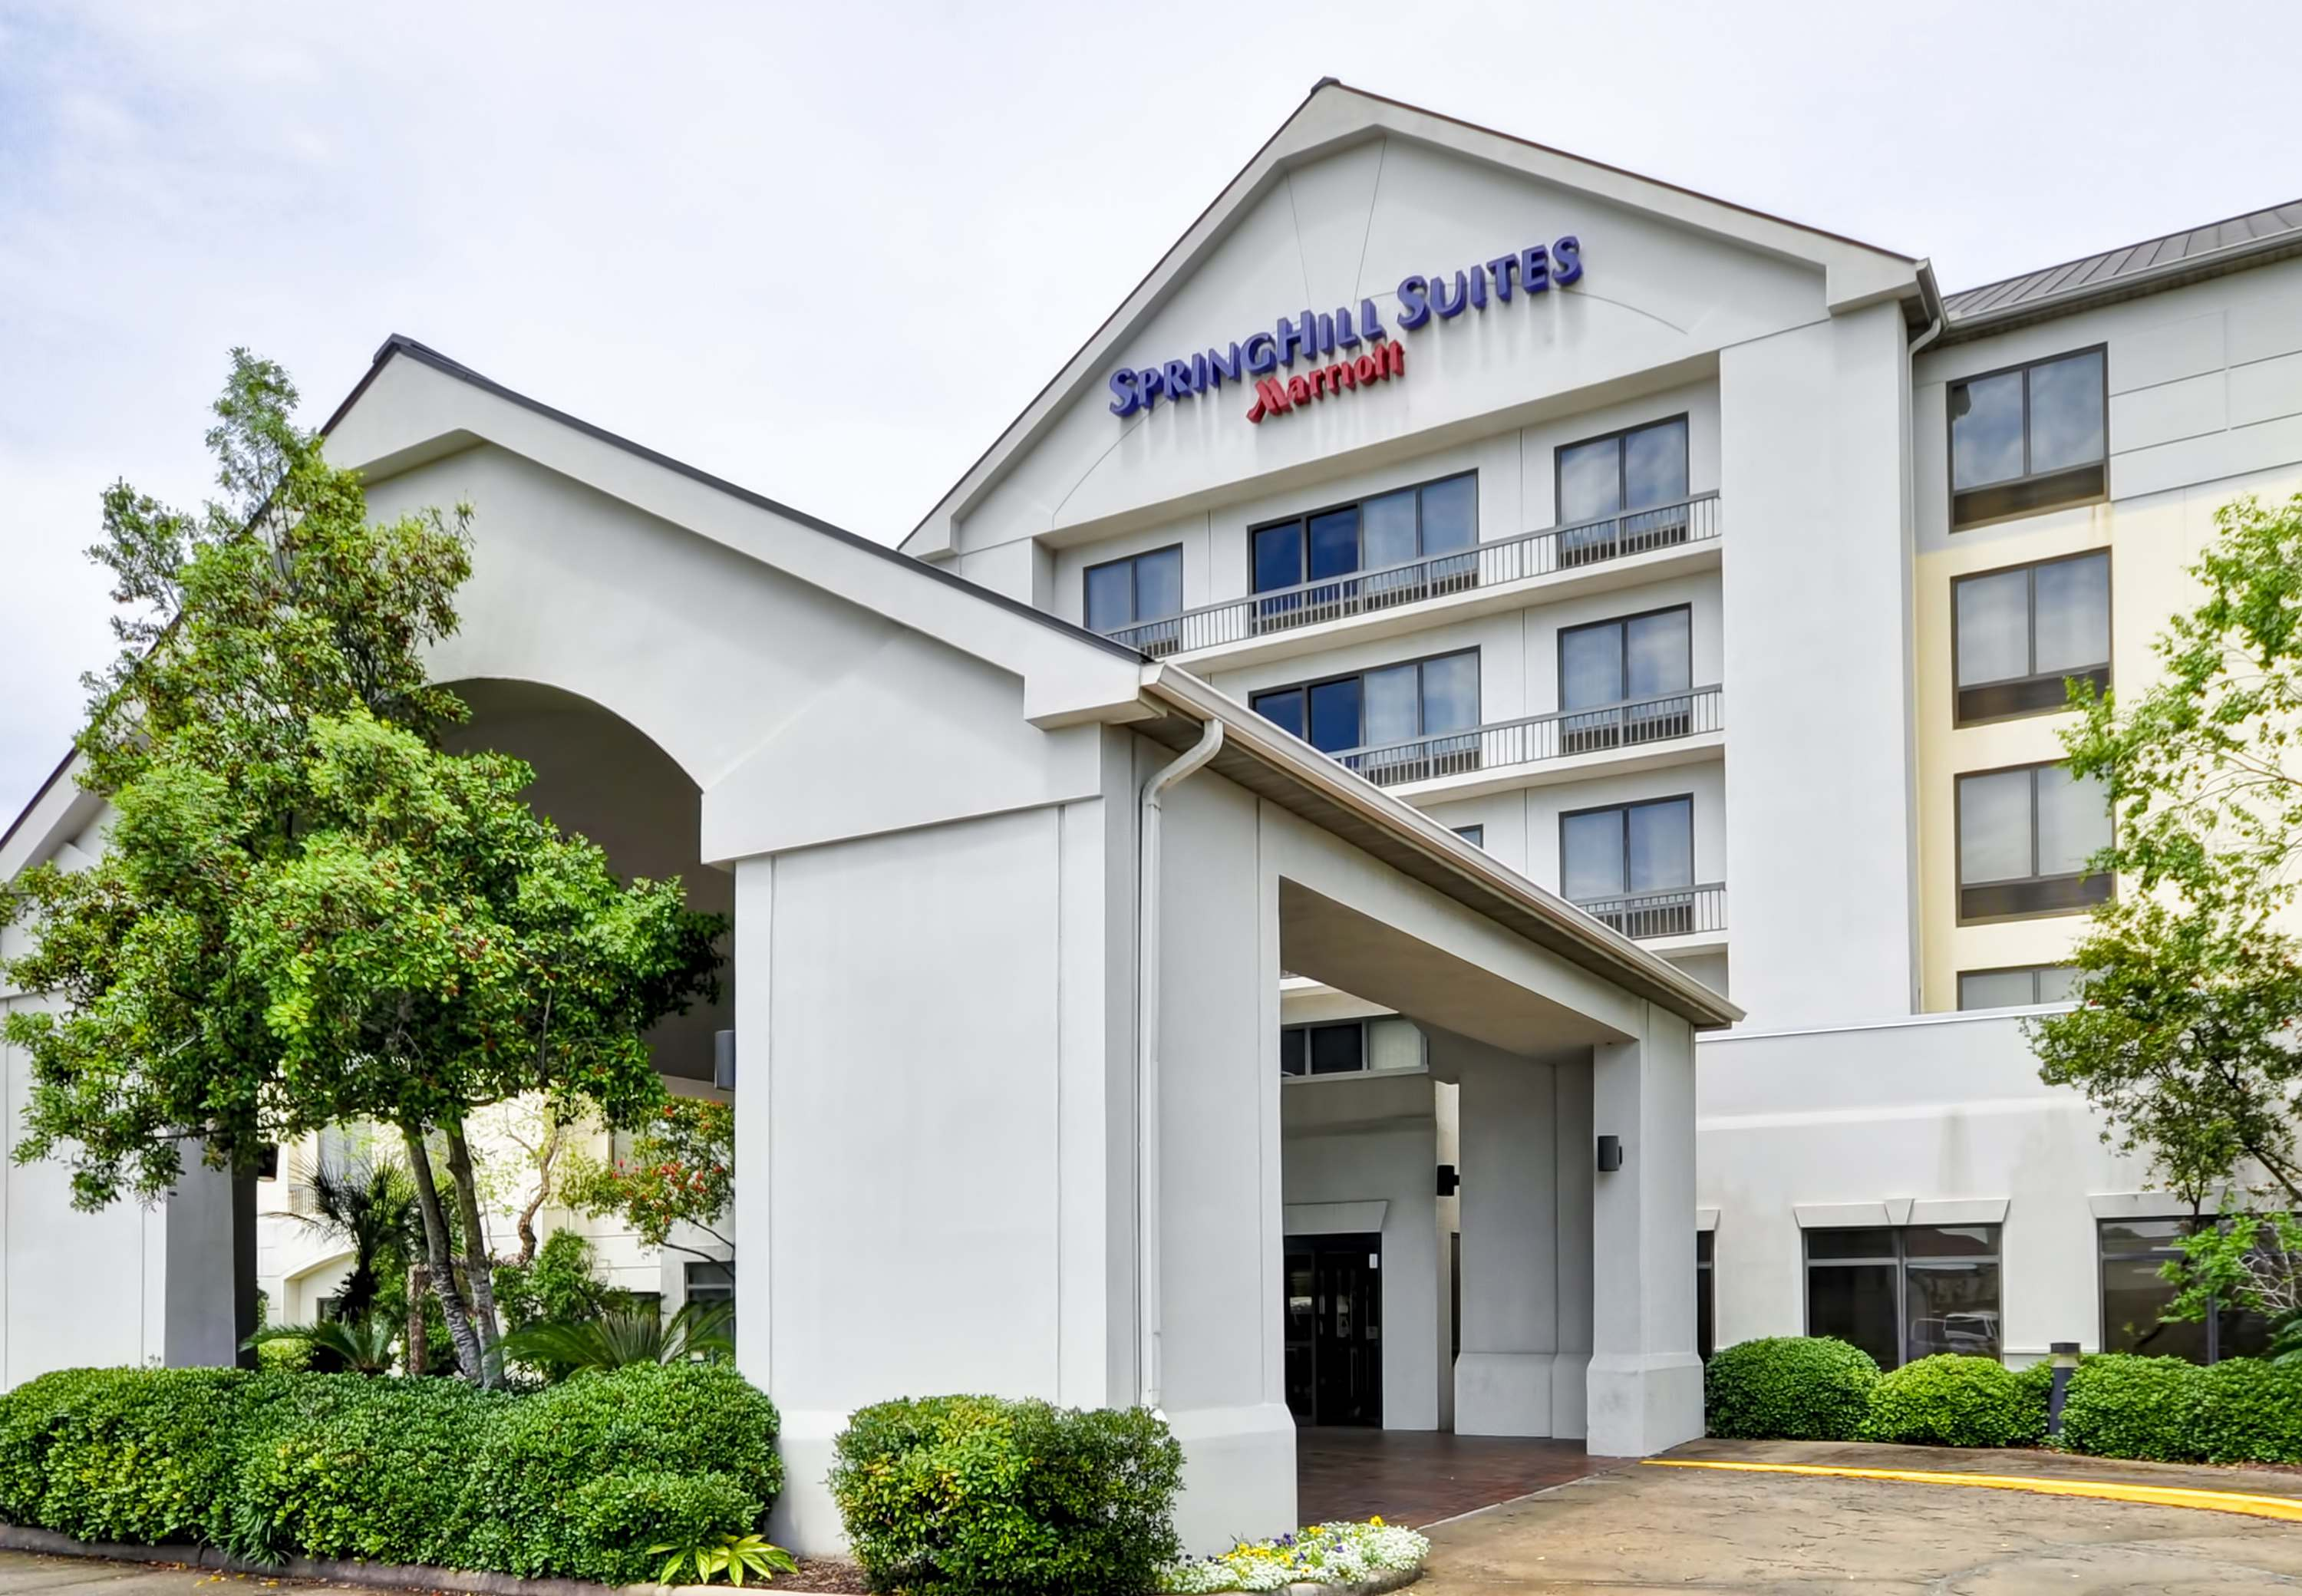 SpringHill Suites by Marriott Houston Hobby Airport image 0